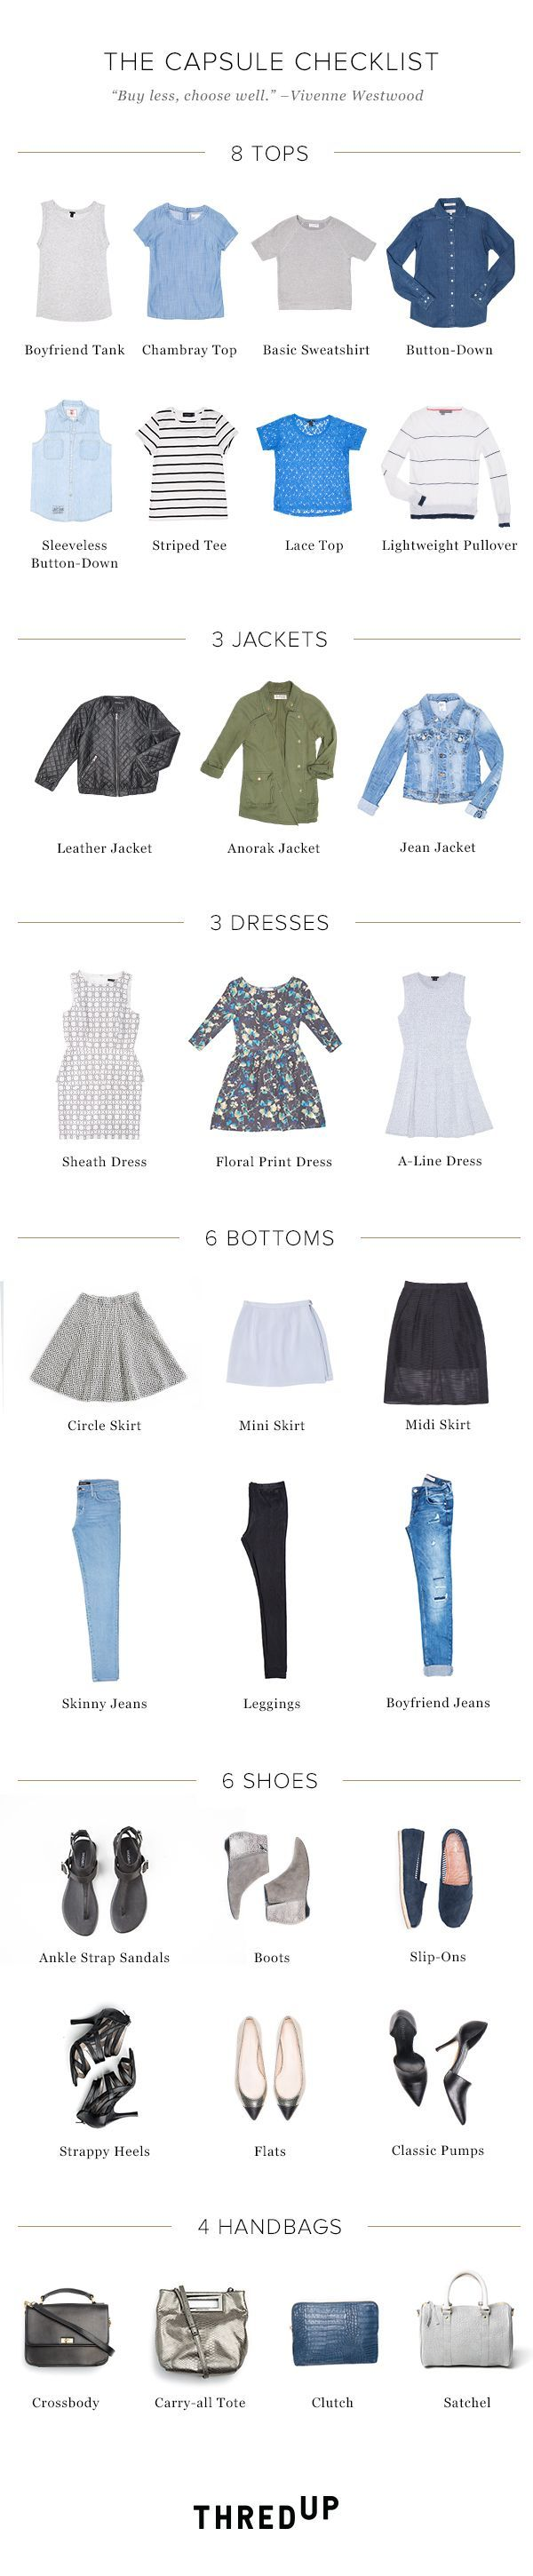 Capsule wardrobes are having a moment right now and for good reason - this is the perfect time of year to take control of your closet, pare down, and focus on a few awesome pieces that you can mix and match a ton of different ways.